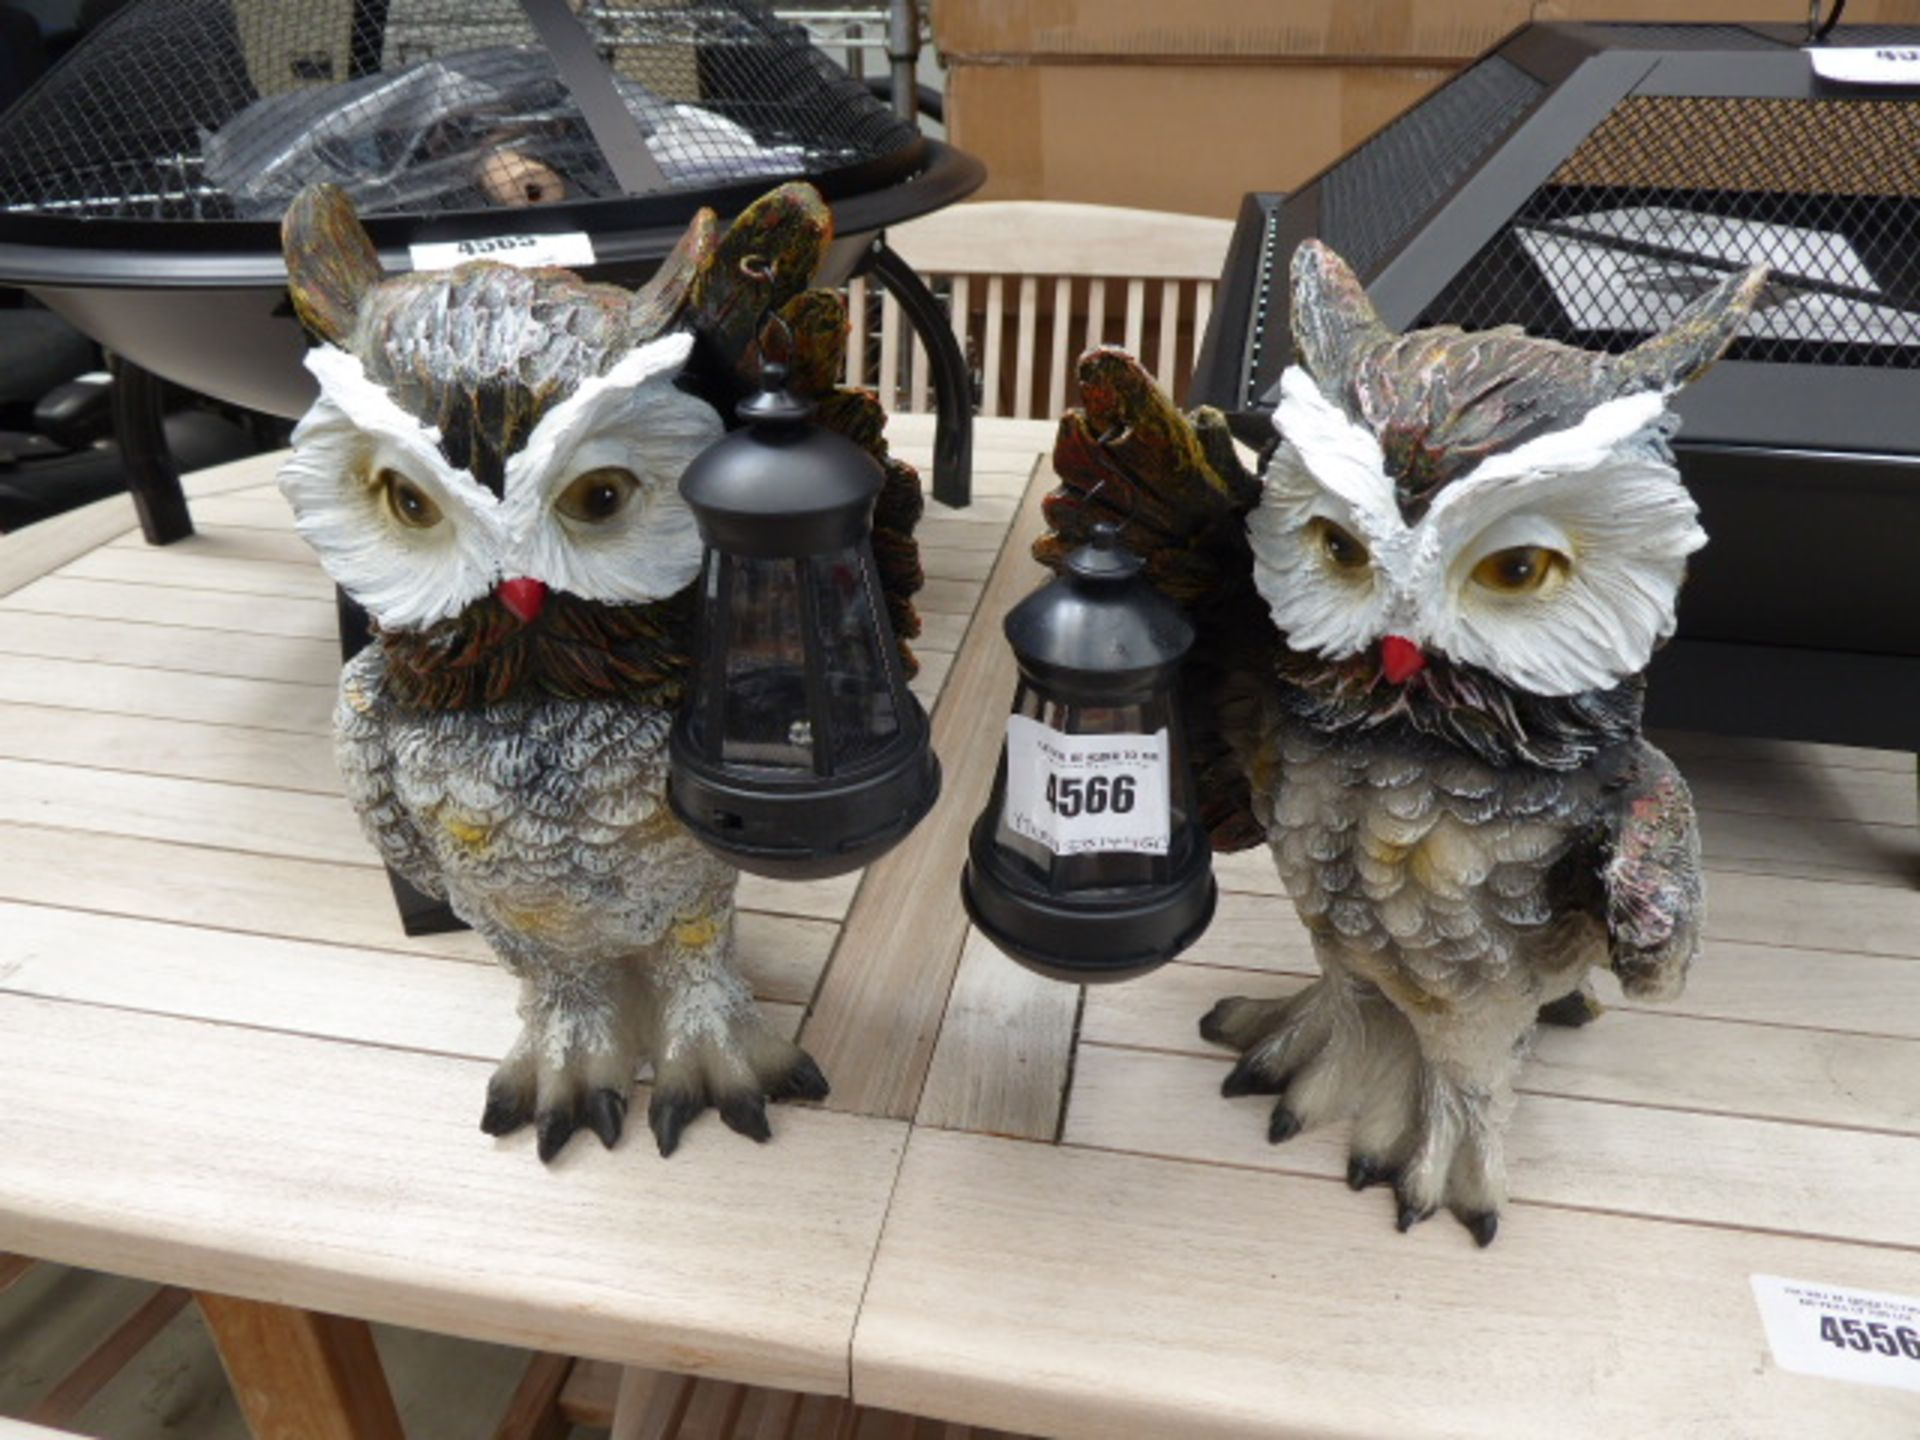 Lot 4566 - 2 resin garden owls with lamps